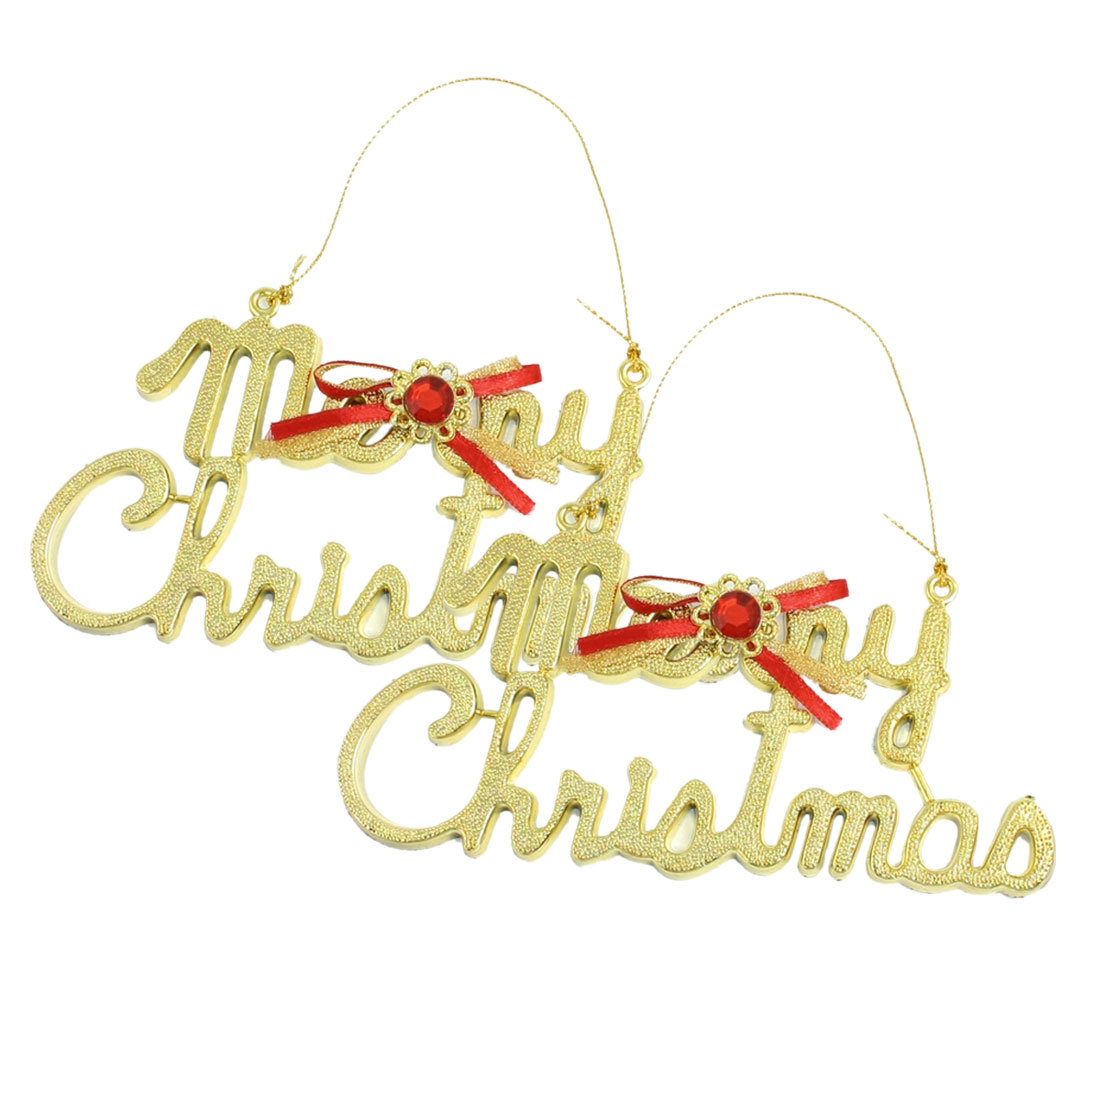 2 Pcs Rhinestone Bowknot Decor Gold Tone Merry Christmas Tree Door Hanger